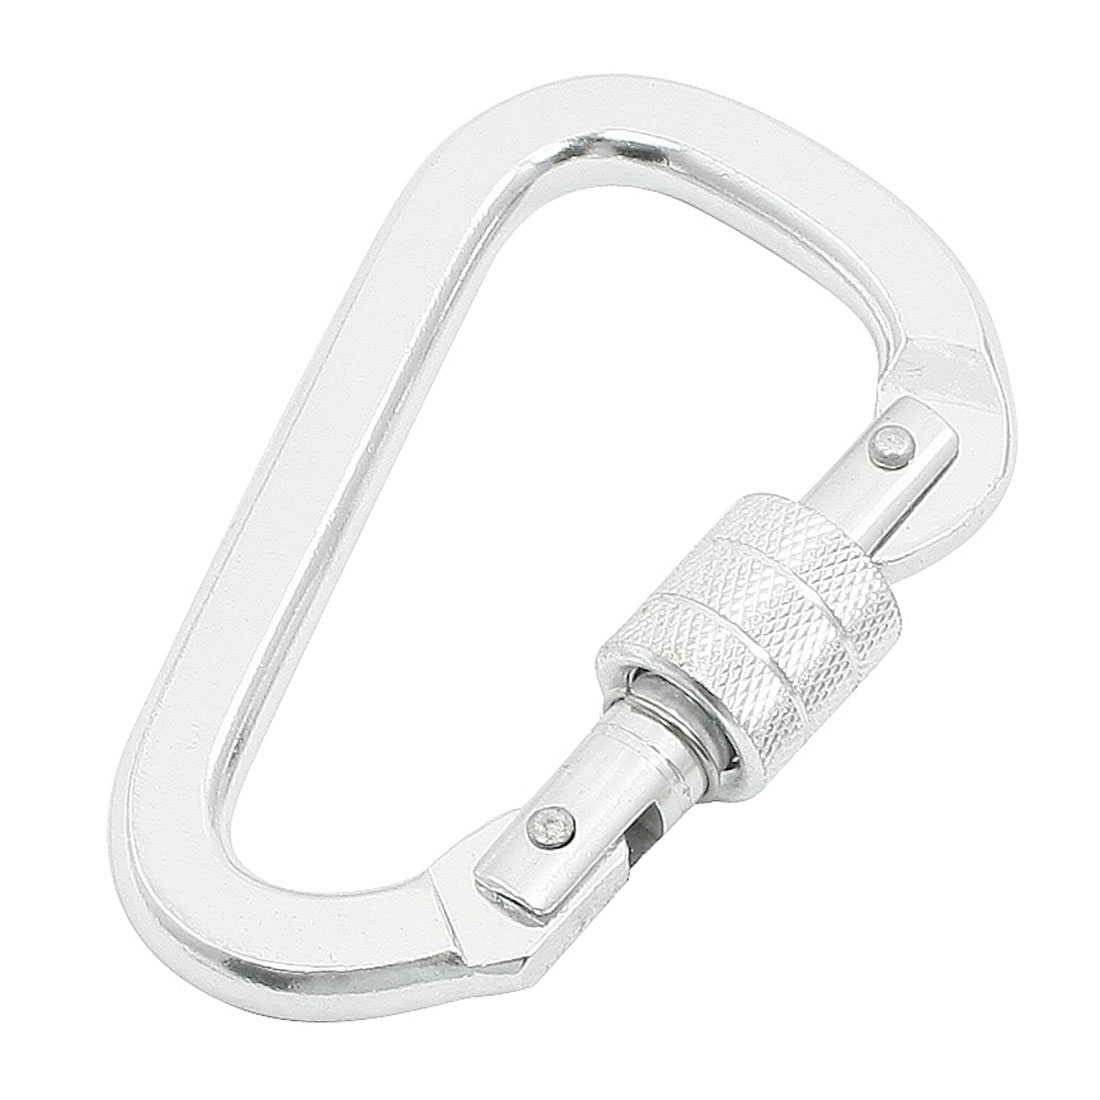 Aluminum Alloy 9.8cm Length Screw Locking Carabiner Silver Tone